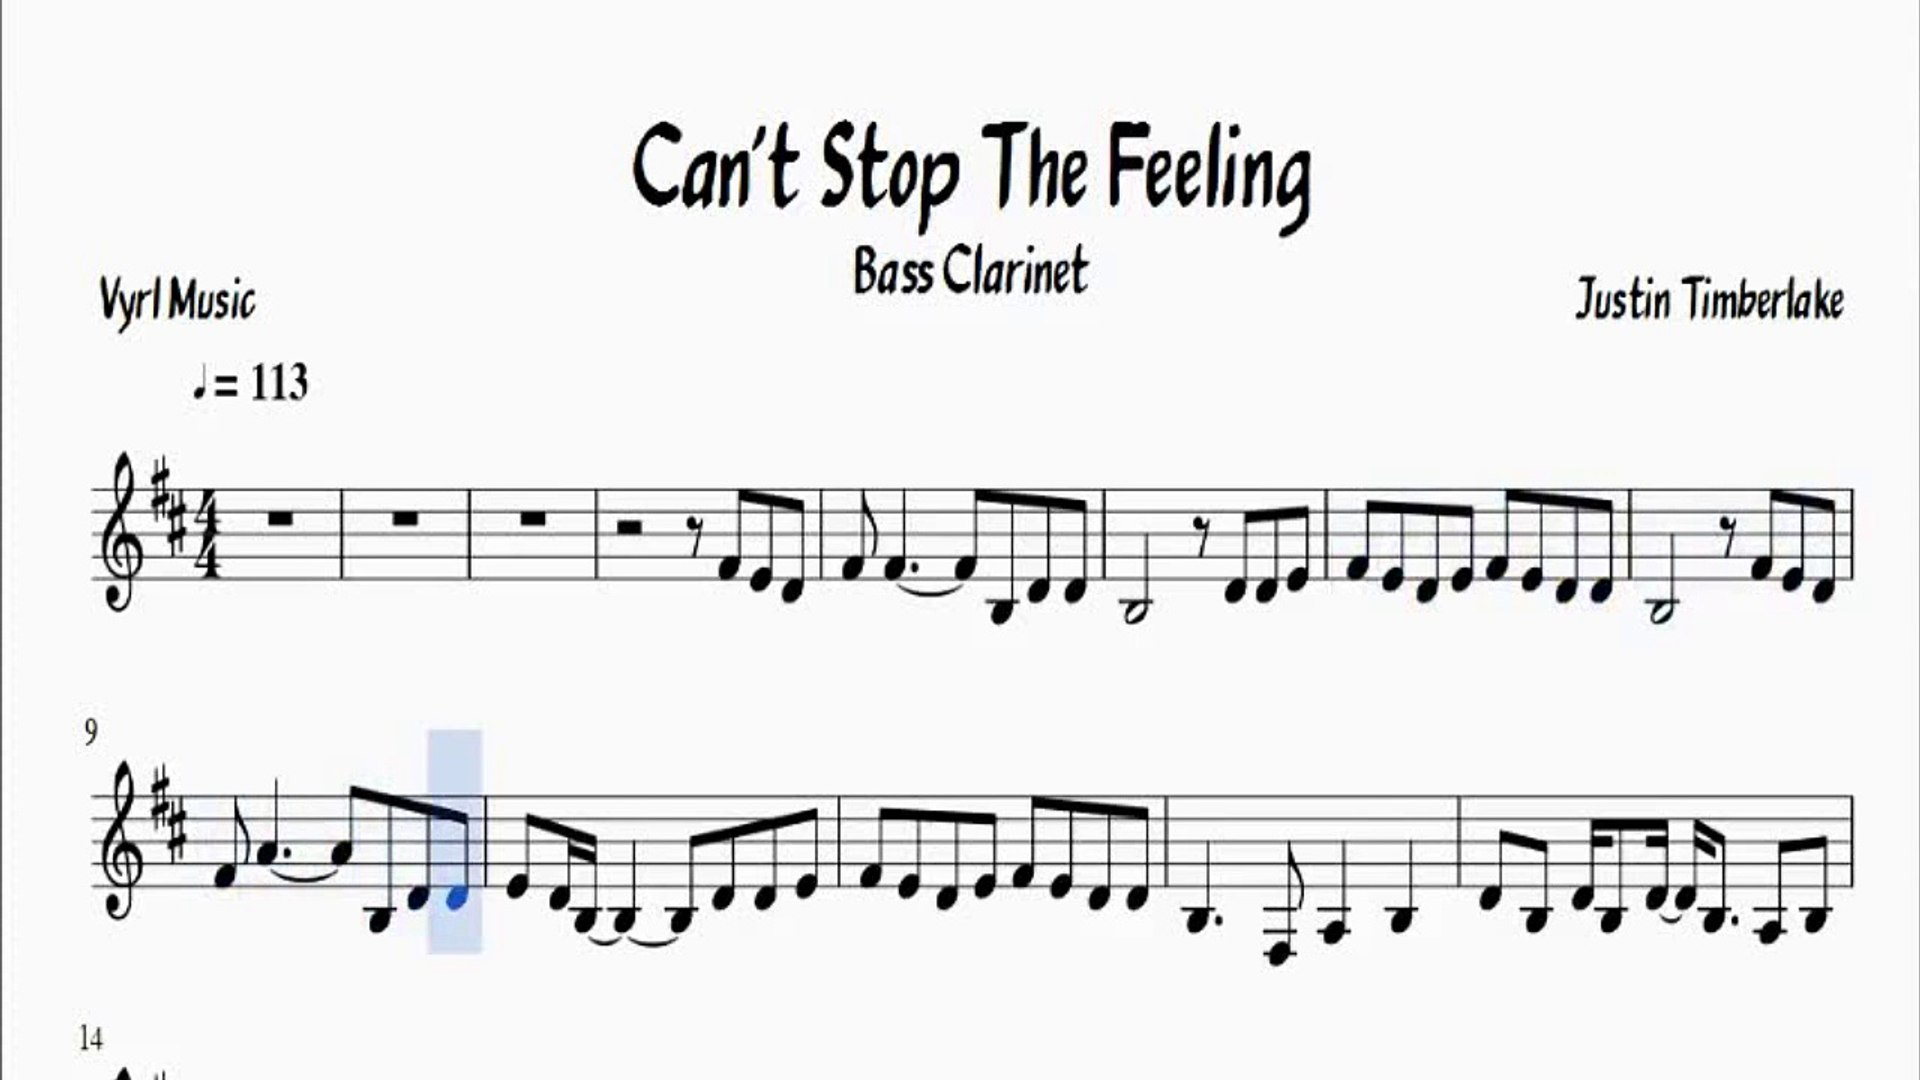 Sheet Music Cant Stop The Feeling Justin Timberlake Bass Clarinet